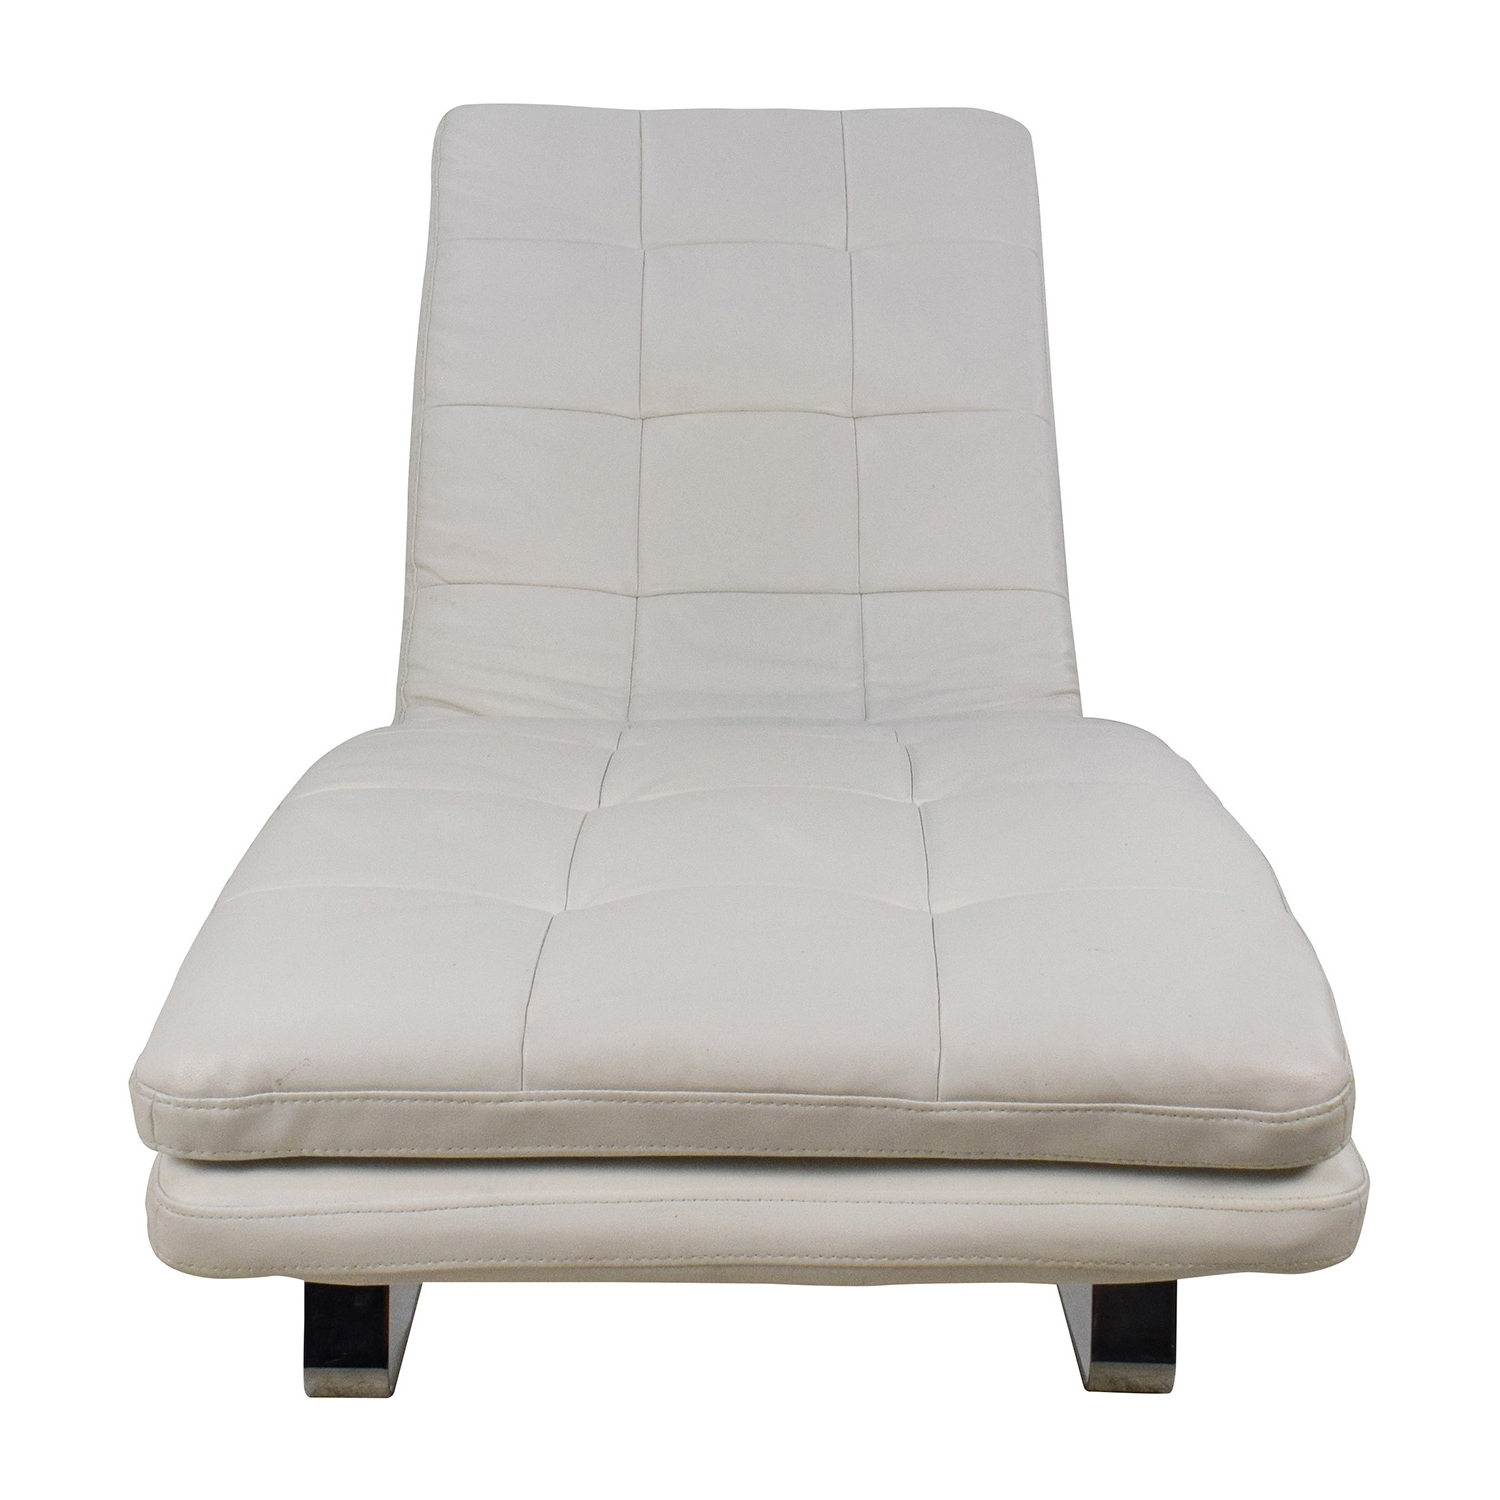 [%85% Off – Leija Designs Leija Designs Brown Mohair Chaise Lounger With Regard To Recent White Chaises|White Chaises Inside 2018 85% Off – Leija Designs Leija Designs Brown Mohair Chaise Lounger|Well Liked White Chaises With 85% Off – Leija Designs Leija Designs Brown Mohair Chaise Lounger|Most Recently Released 85% Off – Leija Designs Leija Designs Brown Mohair Chaise Lounger With White Chaises%] (View 2 of 15)